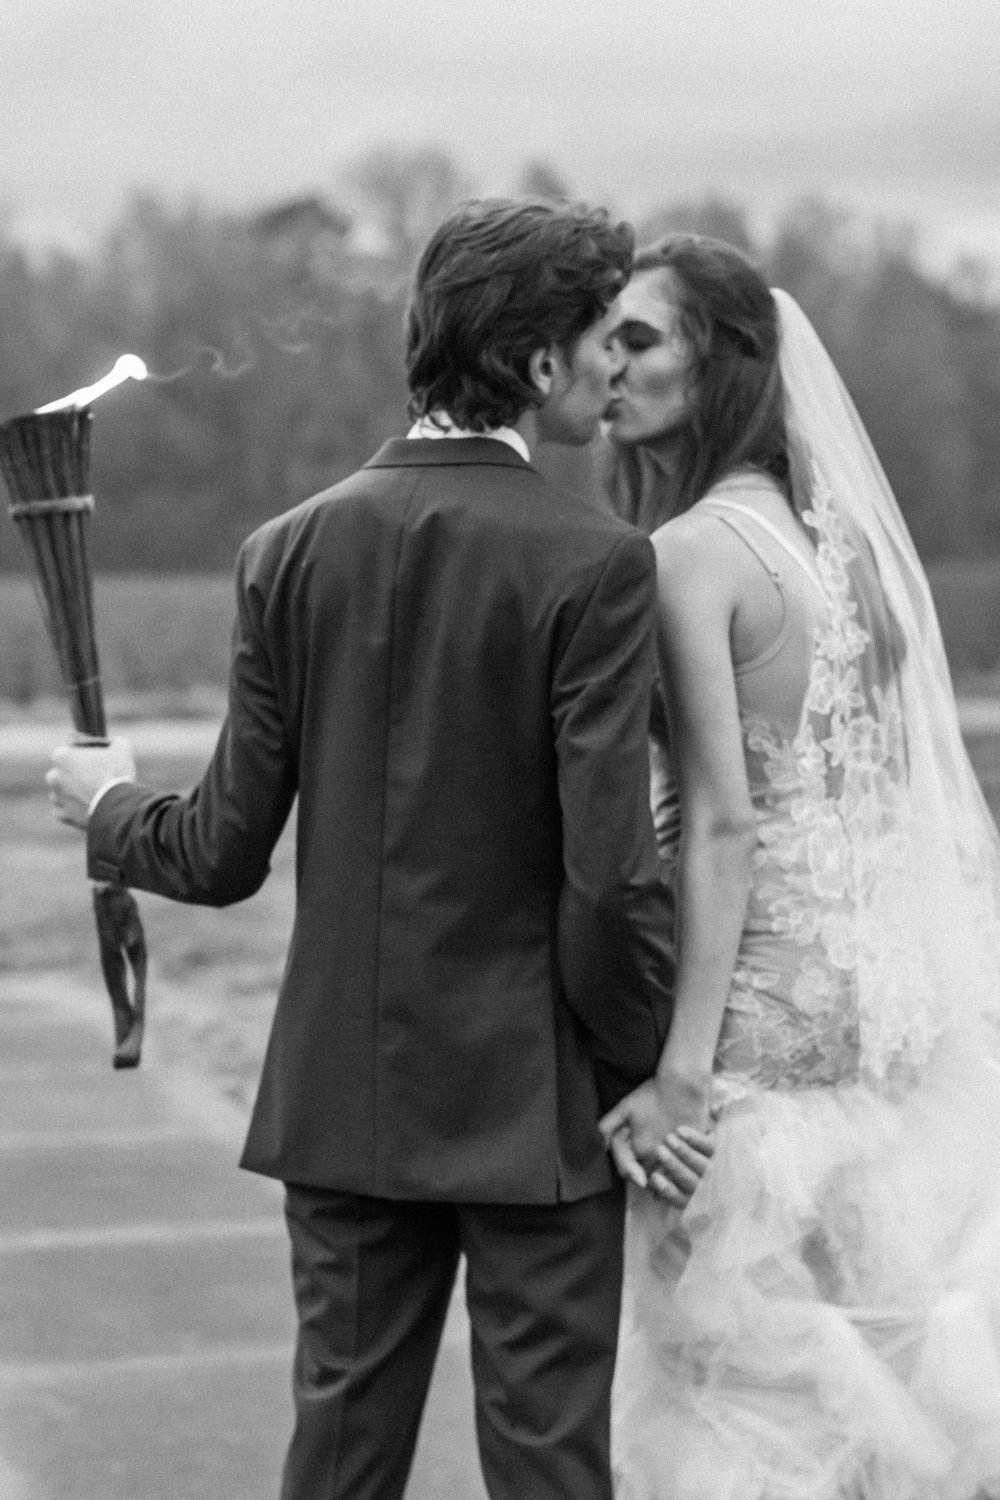 Dark & Moody Wedding Inspiration | Andrea Rodway Photography-39.jpg